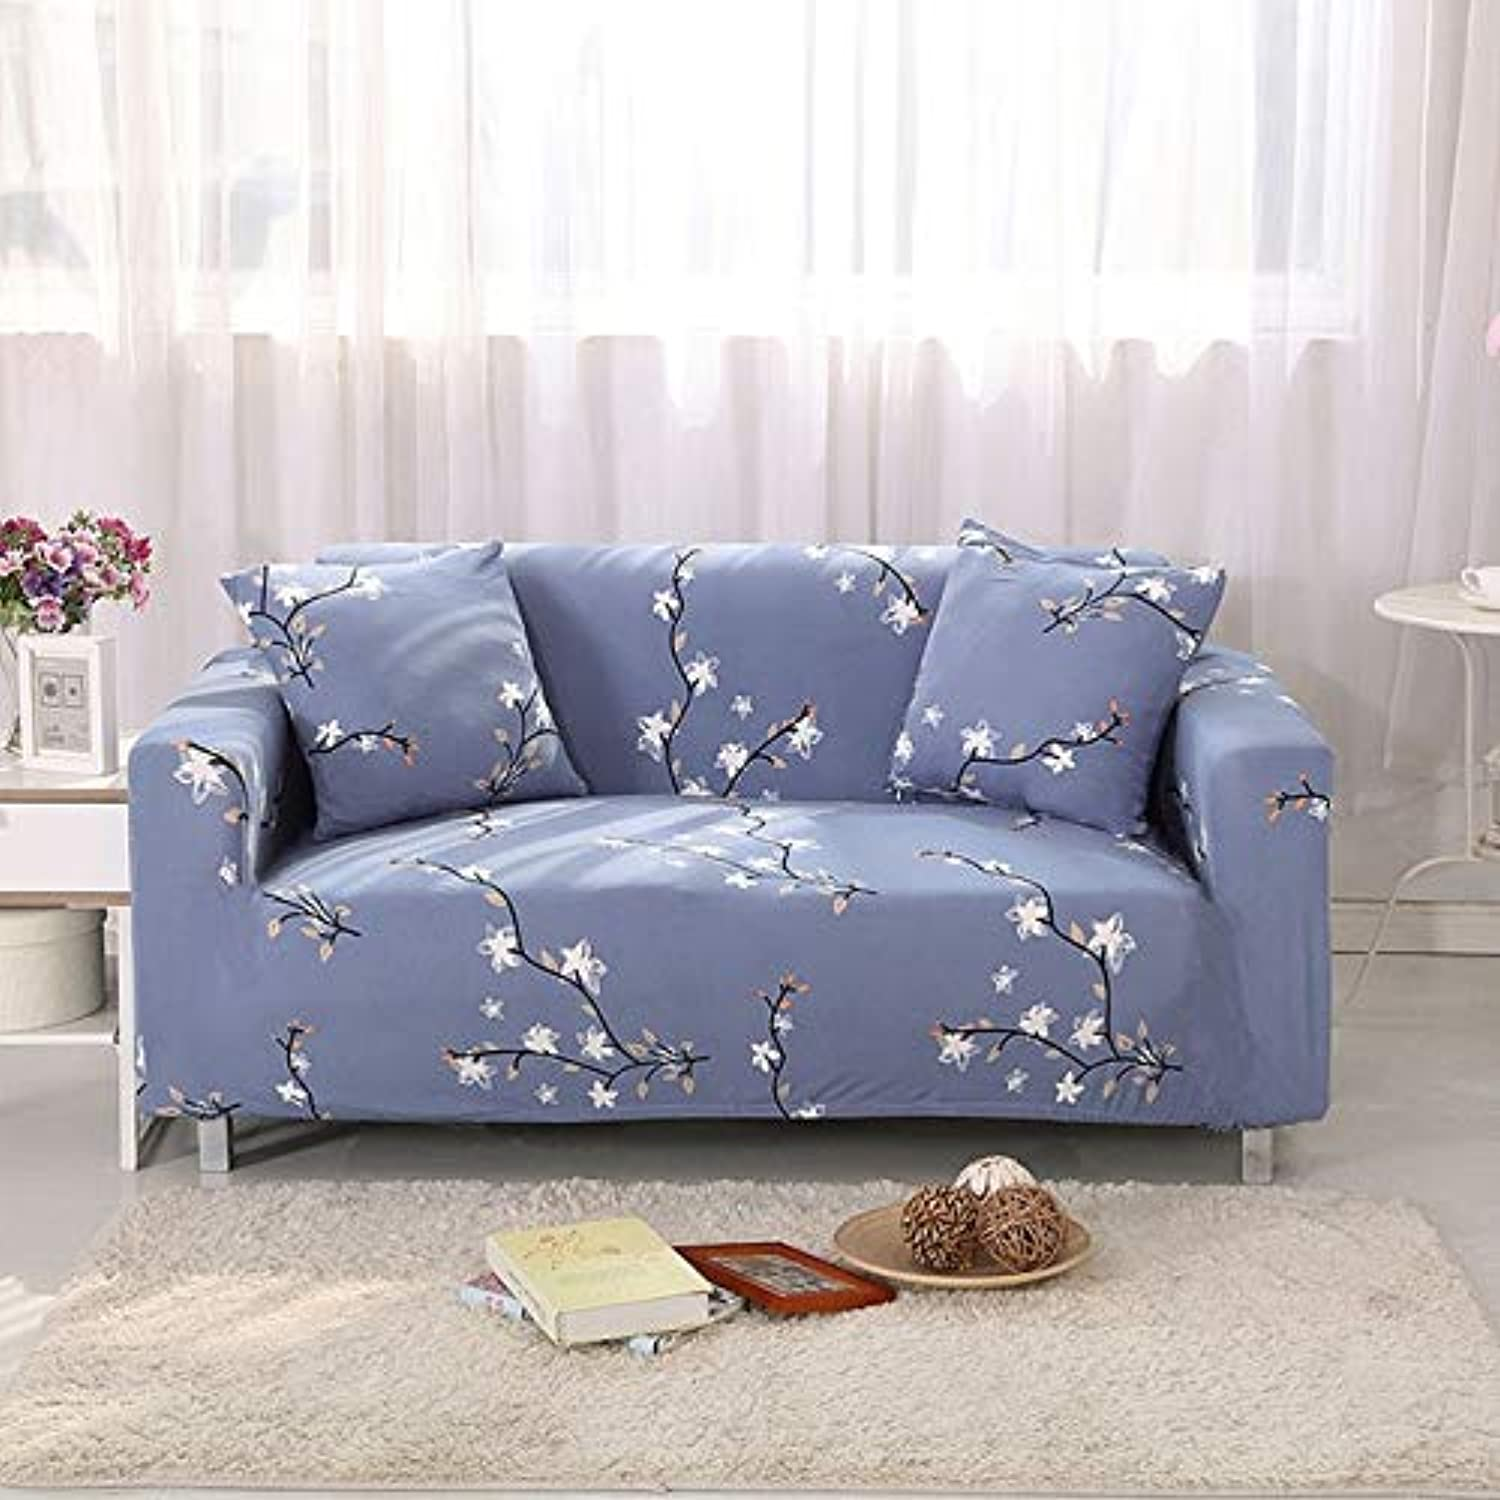 Europ Style Sofa Cover Sofa-Slip Tight Elastic Sofa Towel Wrap All-Inclusive Slip-Resistant Couch Cover 1 2 3 4-seater   21, Two-seat